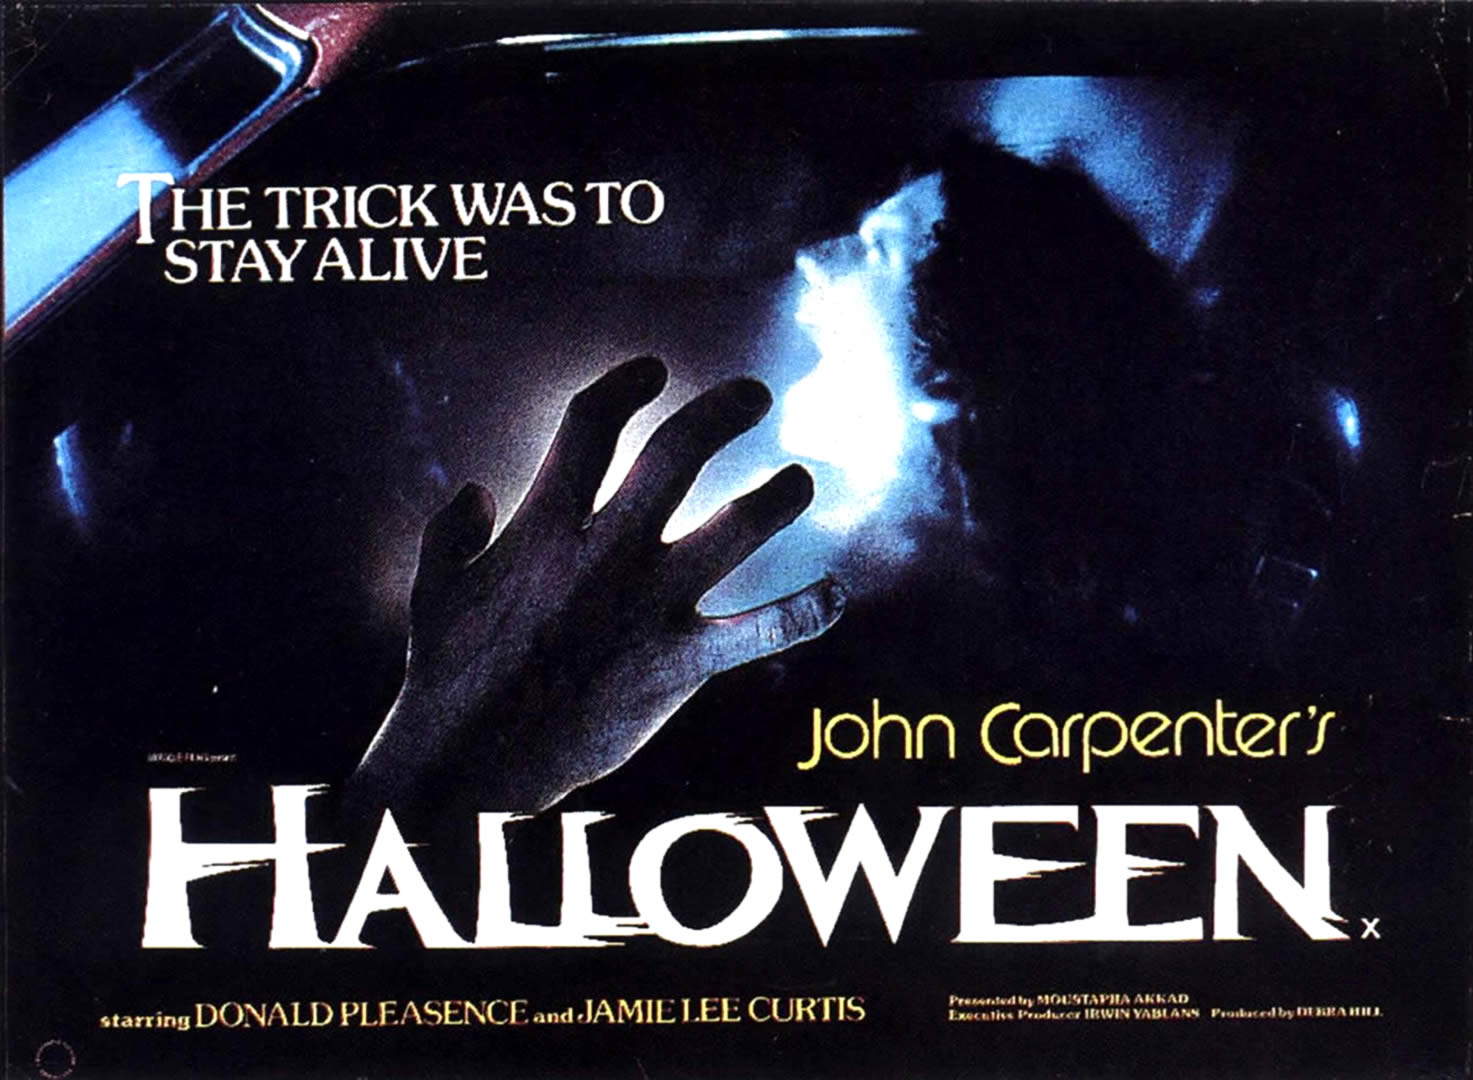 HALLOWEEN 2 - Slasher B Movie Posters